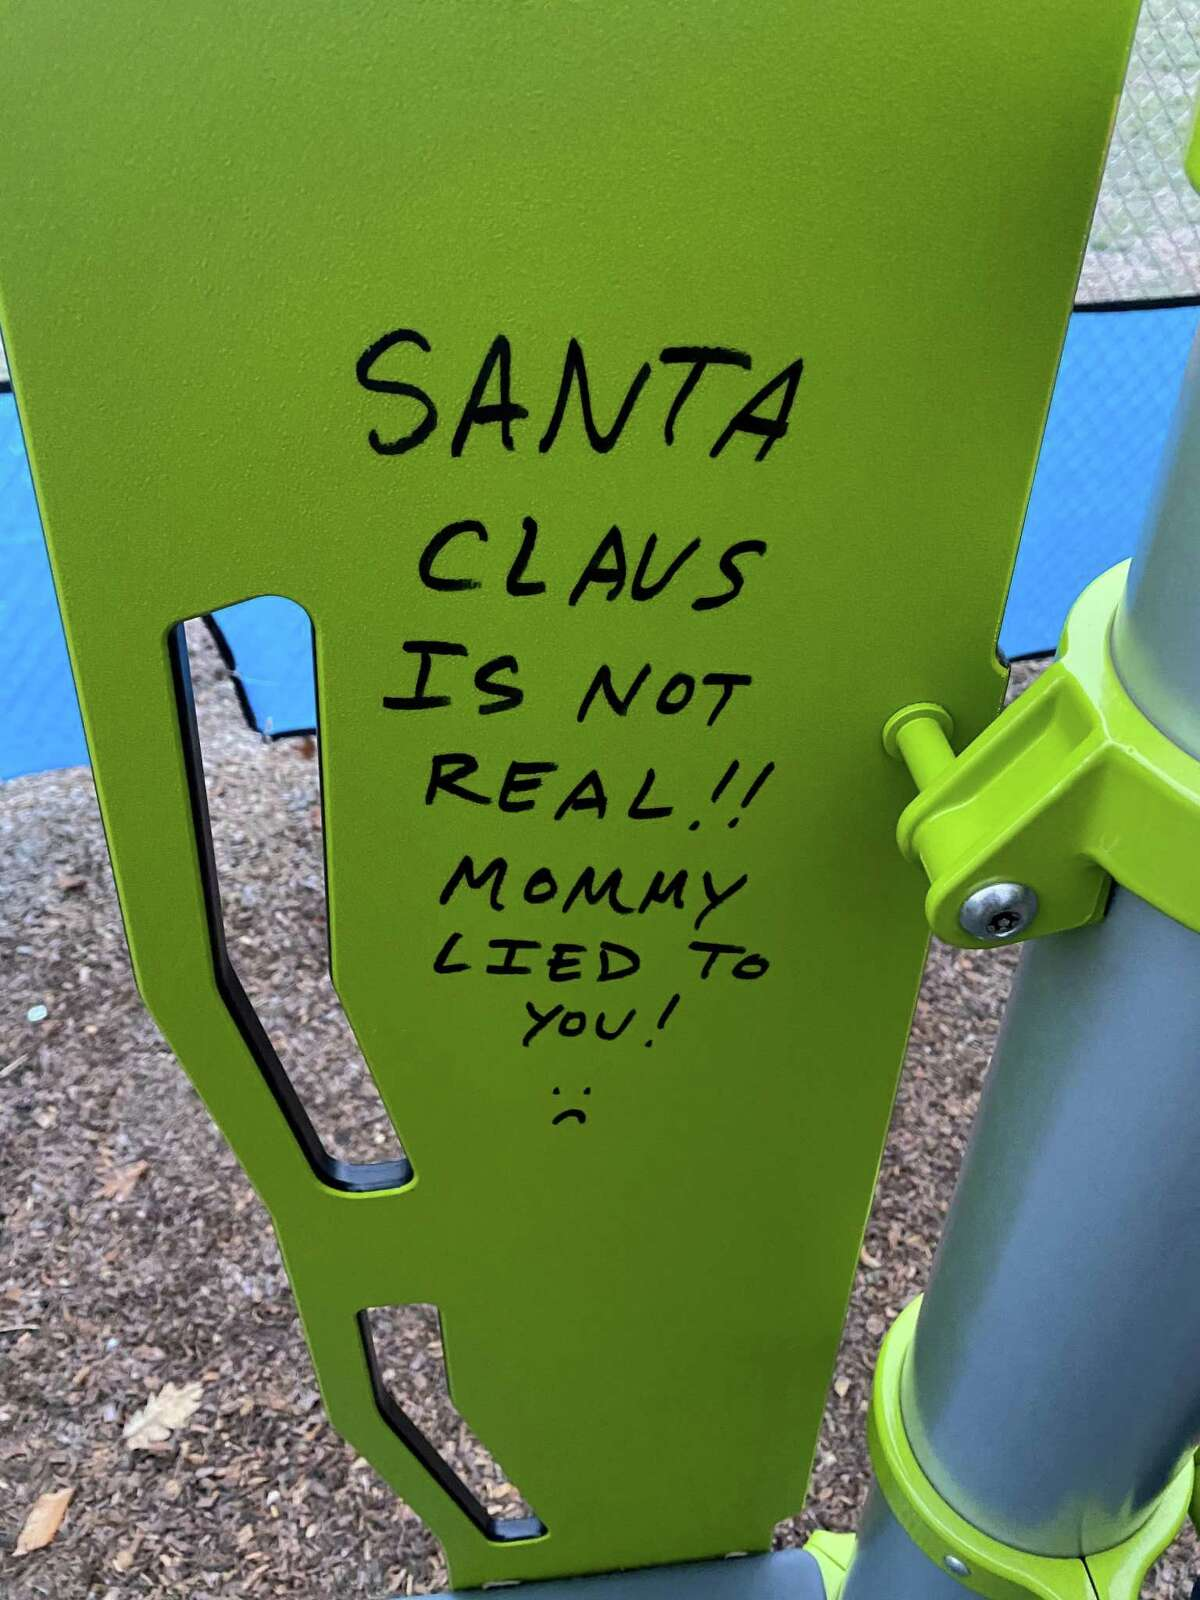 Two play structures at the Norwalk Early Childhood Center and one at Naramake Elementary School were vandalized with the message